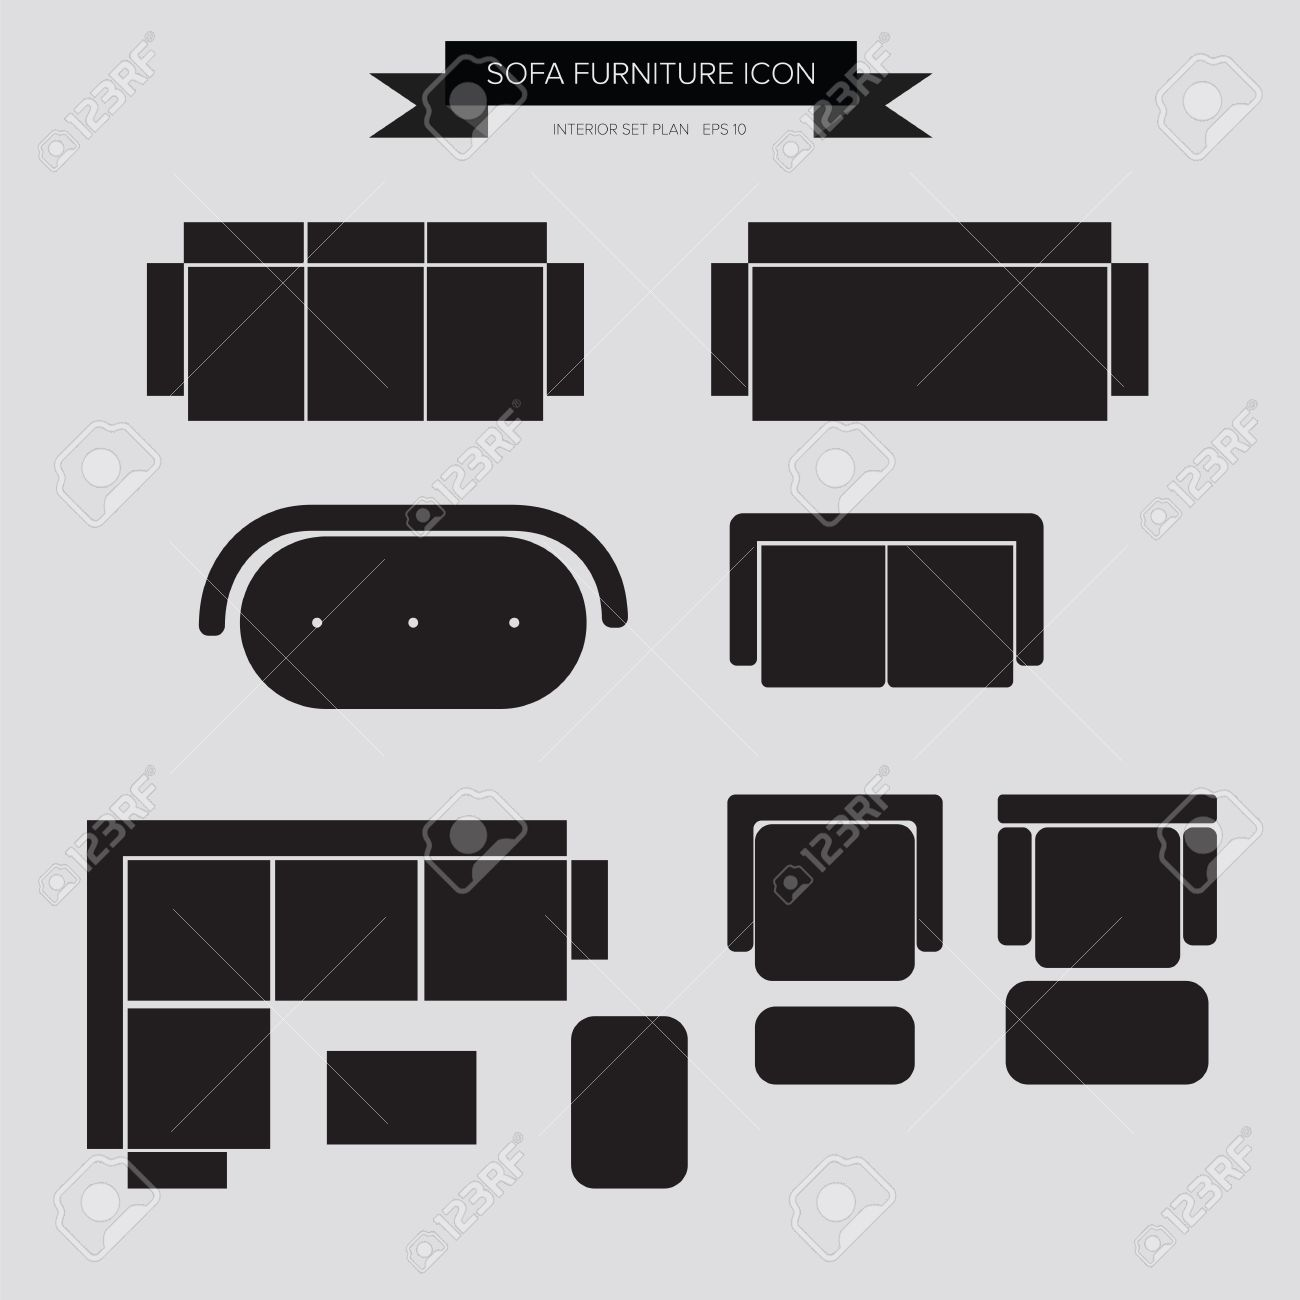 Sofa Furniture Icon Top View For Interior Plan Vector Eps10 Stock